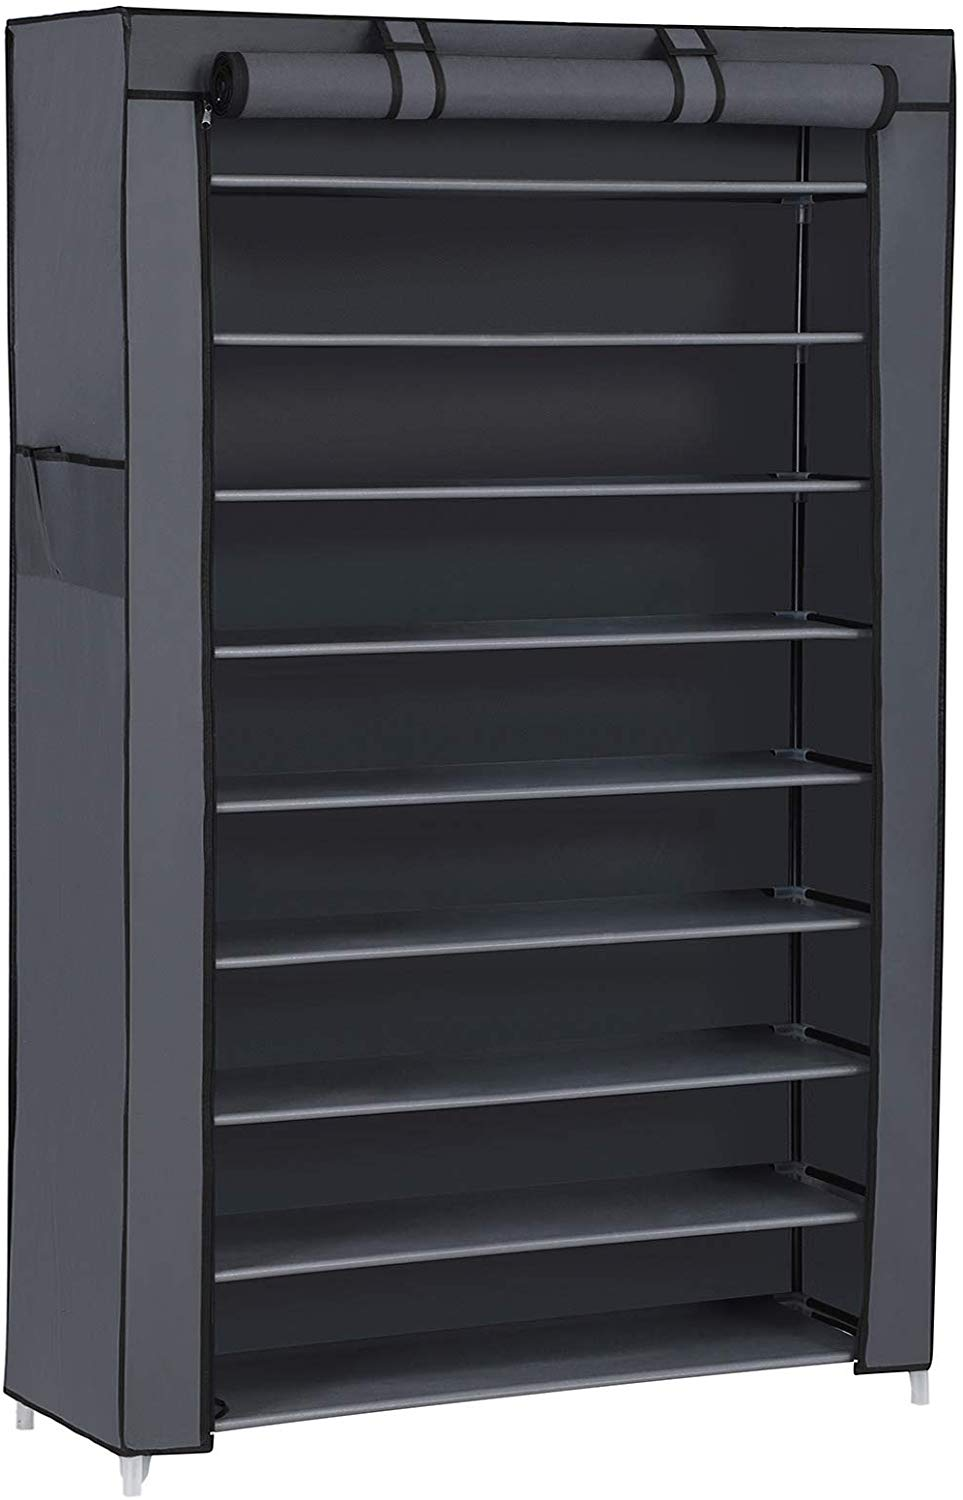 10 Tier up to 45 Pairs Adjustable Shoe Rack Cabinet Storage Organizer